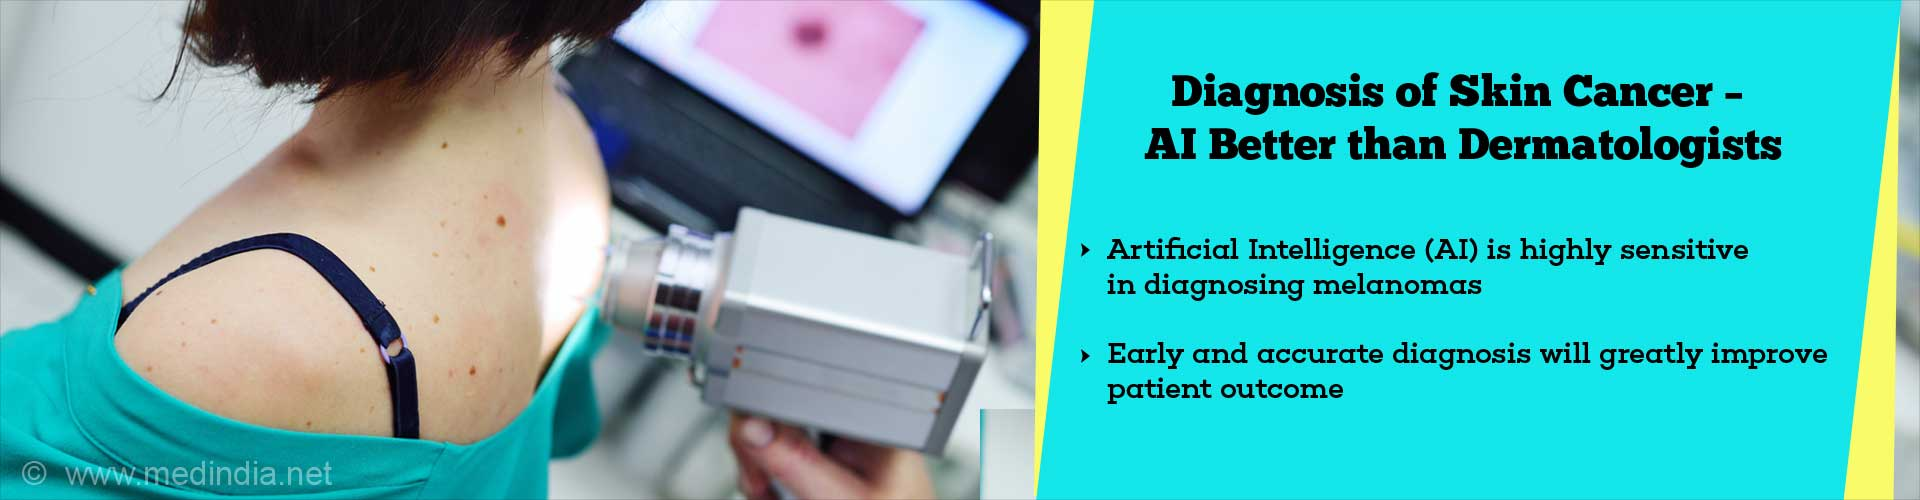 Artificial Intelligence (AI) Performs Better Than Dermatologists in Diagnosing Skin Cancer